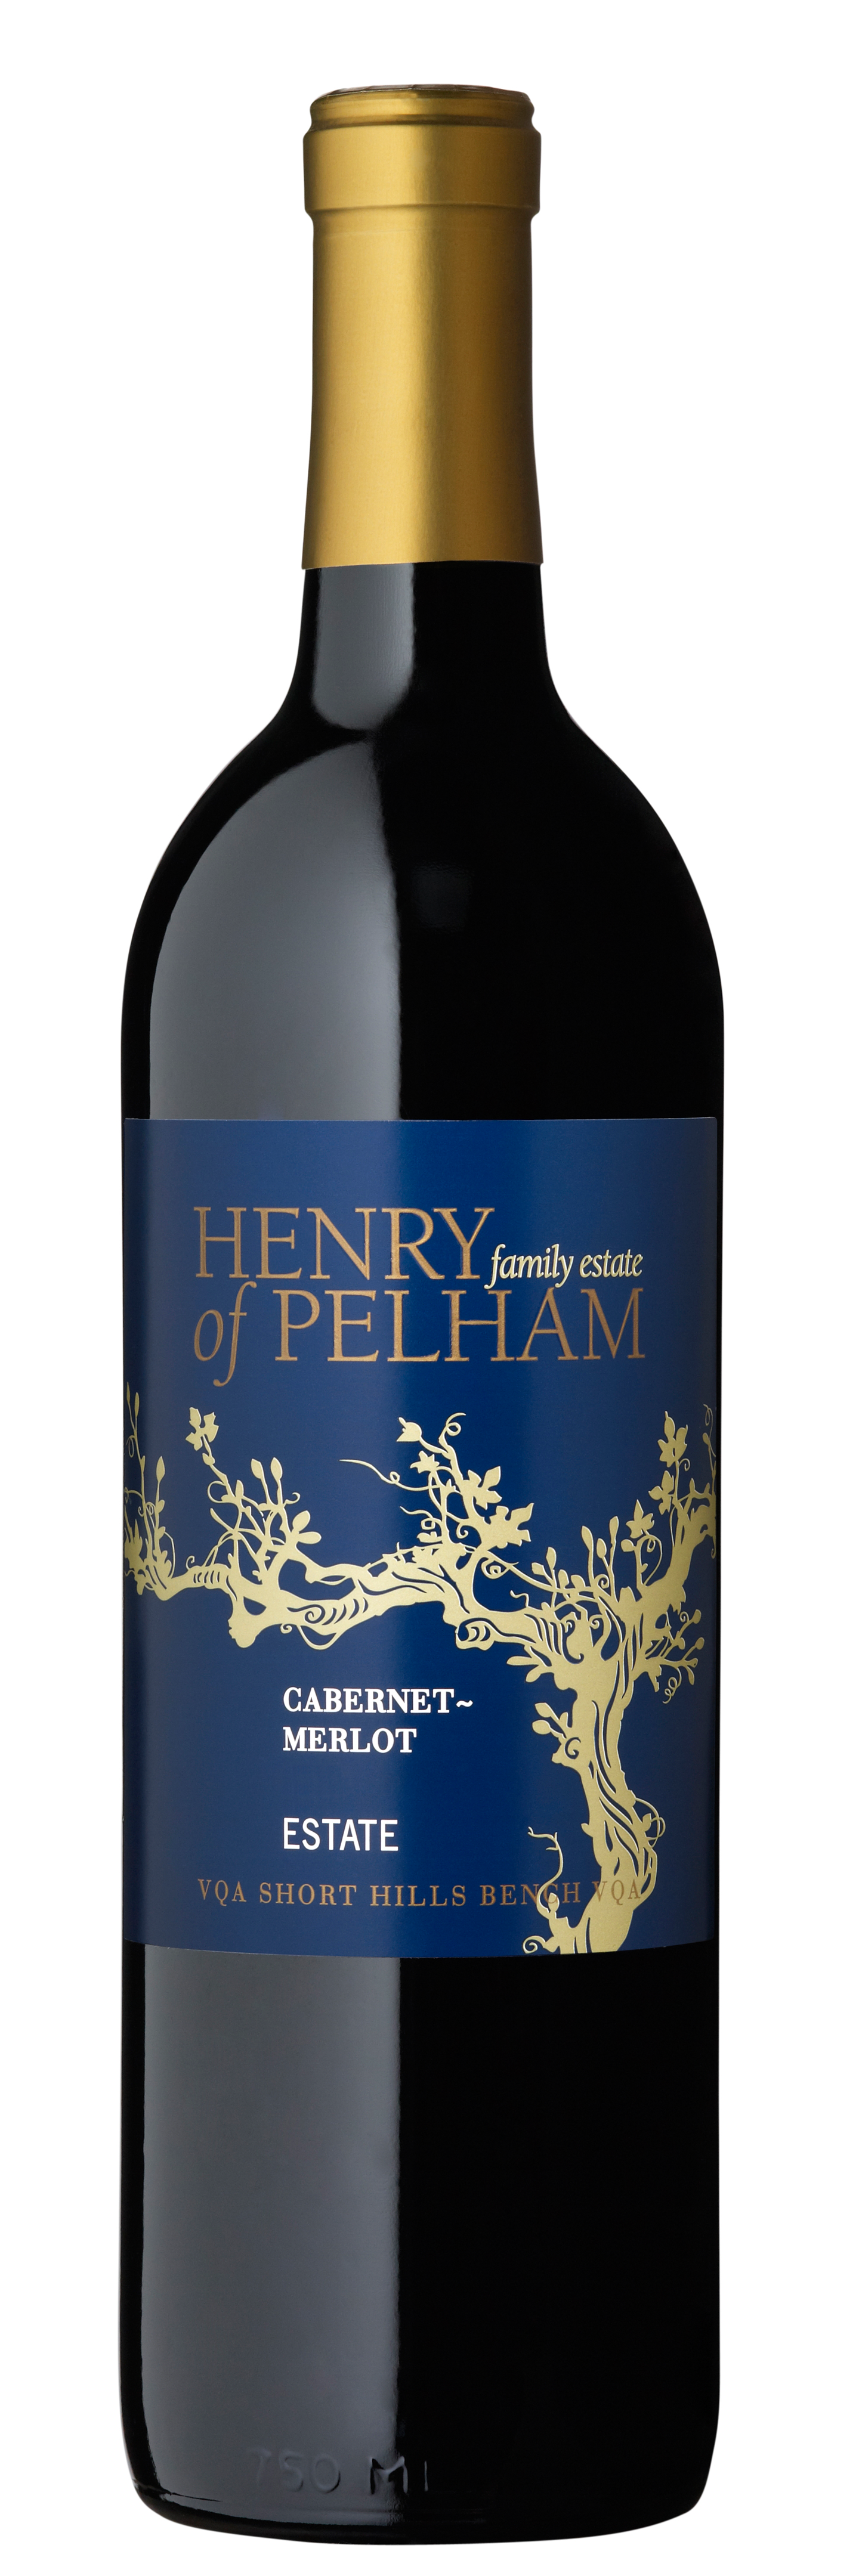 Cabernet-Merlot Estate